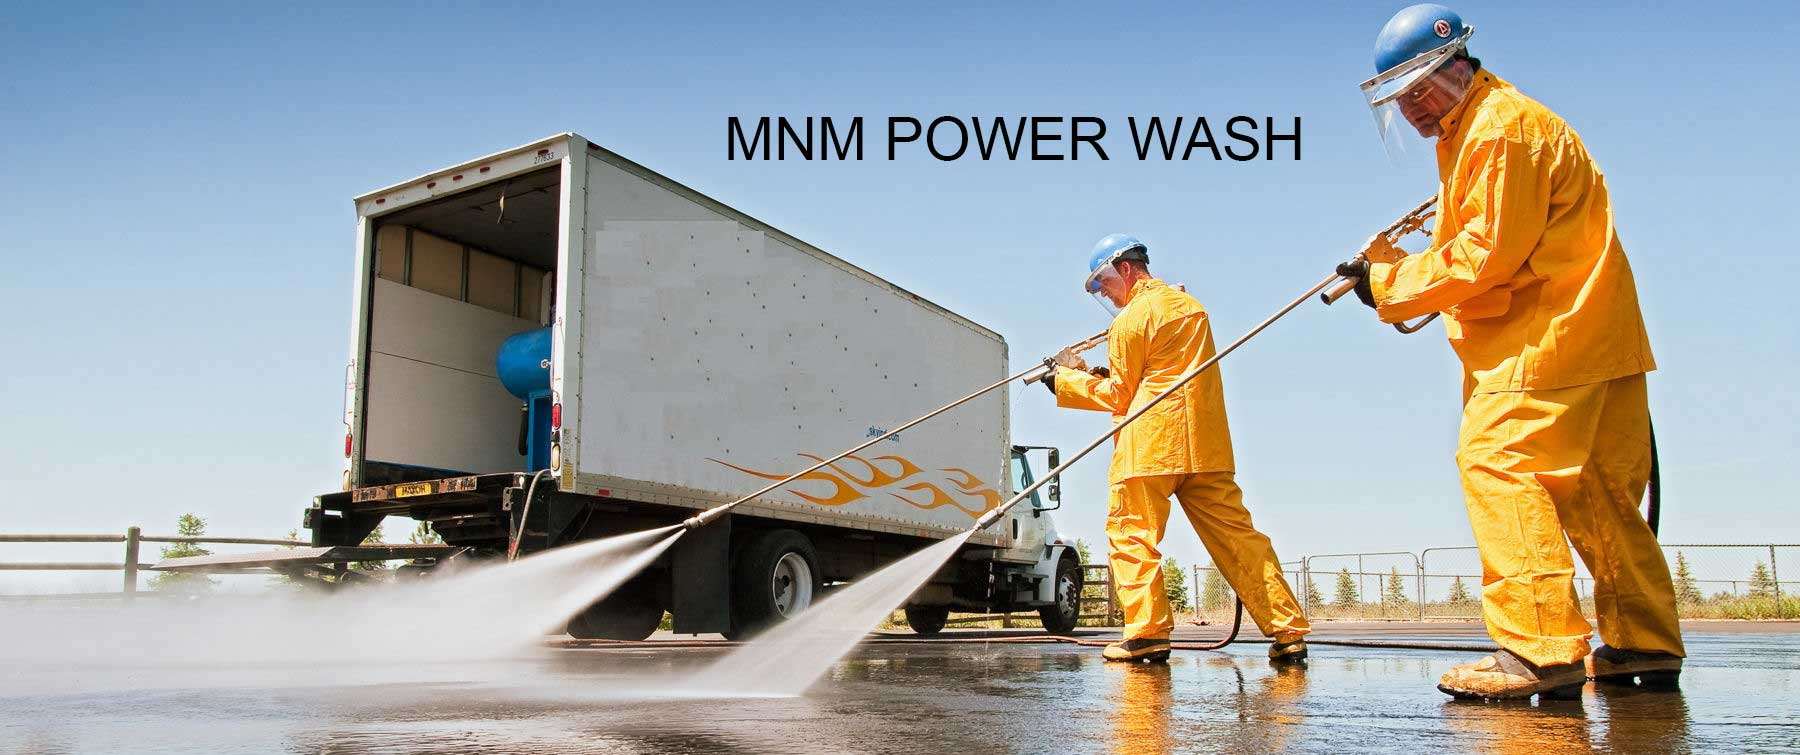 mnm-handyman-powerwash-slides1